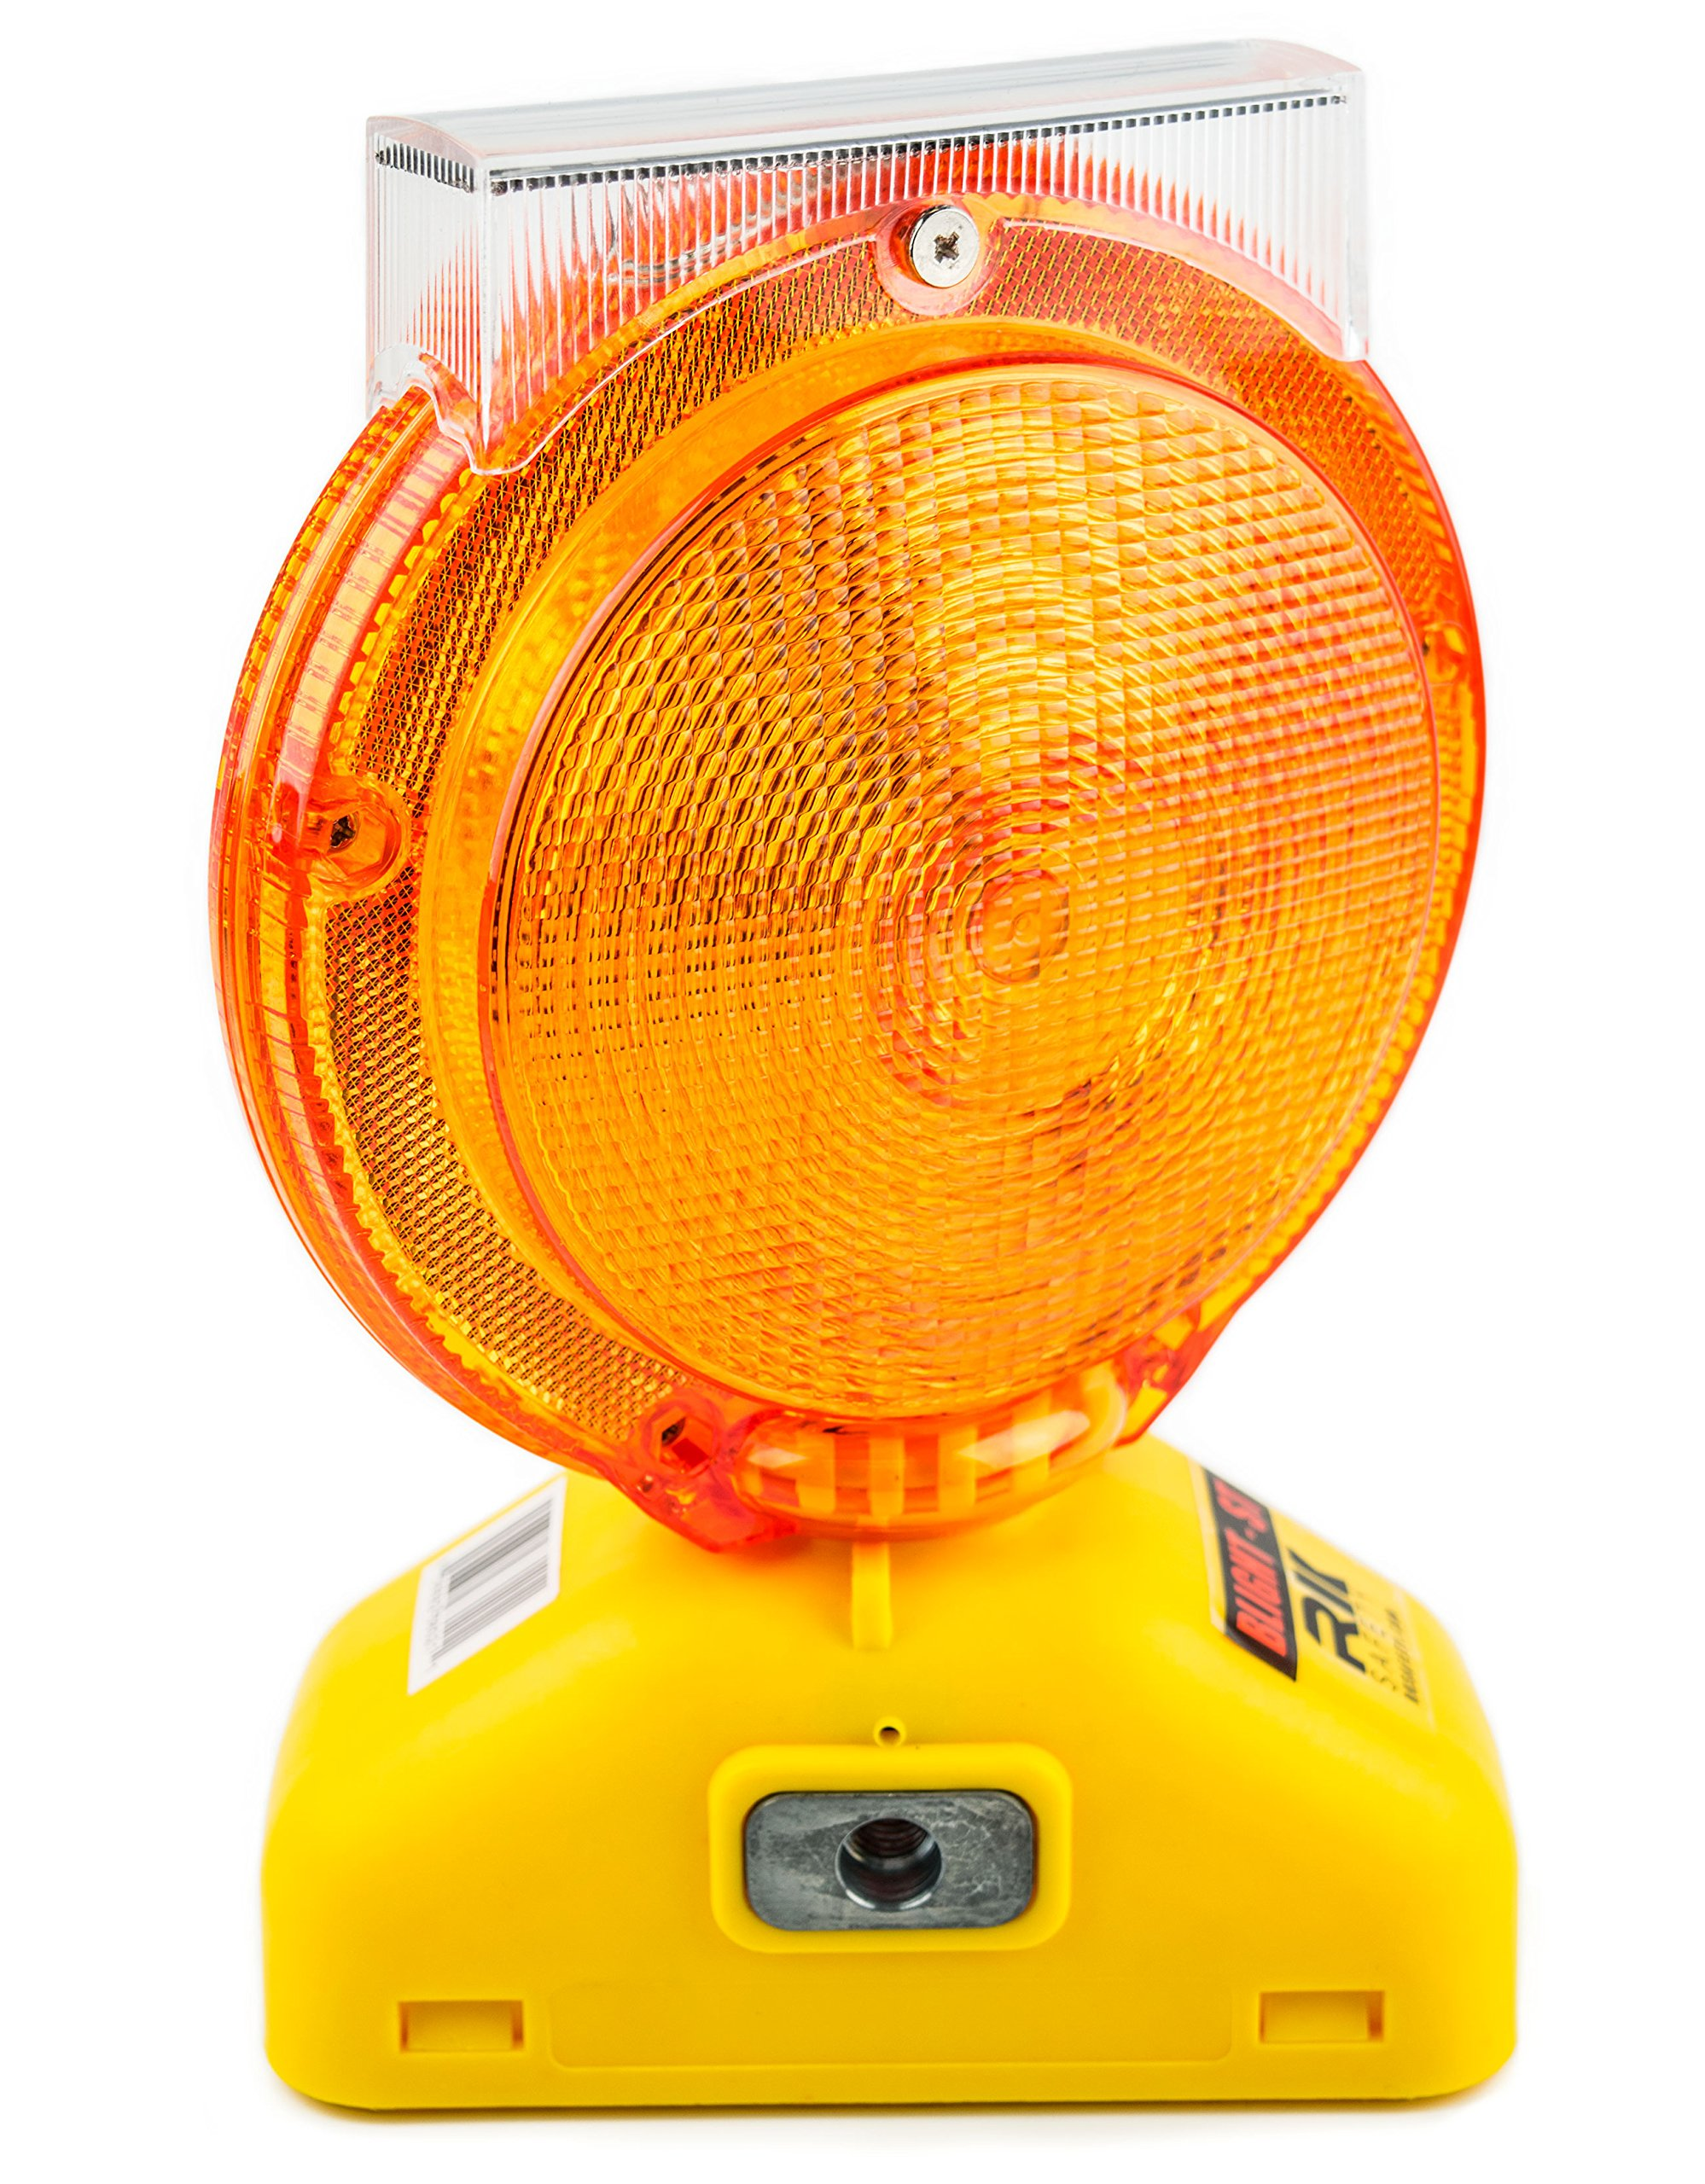 RK Safety BLIGHT-ST Solar Rechargeable Barricade Amber LED Warning Lights | Traffic signal Flashing 2-Sided Visibility, Type A/C, 3-Way Operation Switch | W/ Switch Pin and Bolt